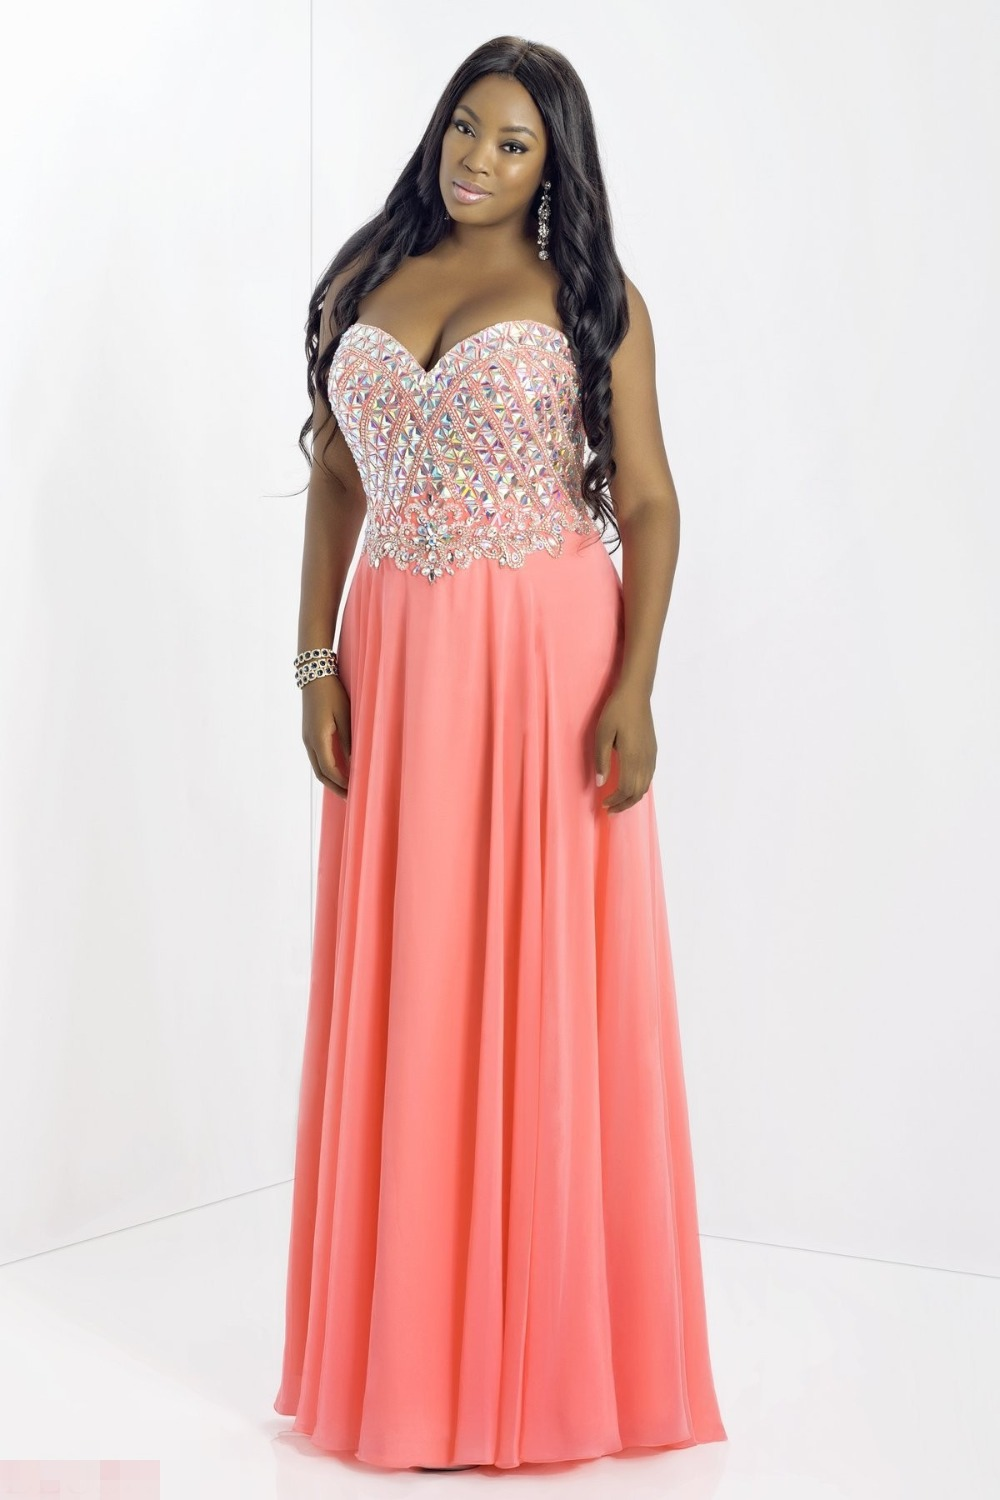 high school graduation dresses plus size